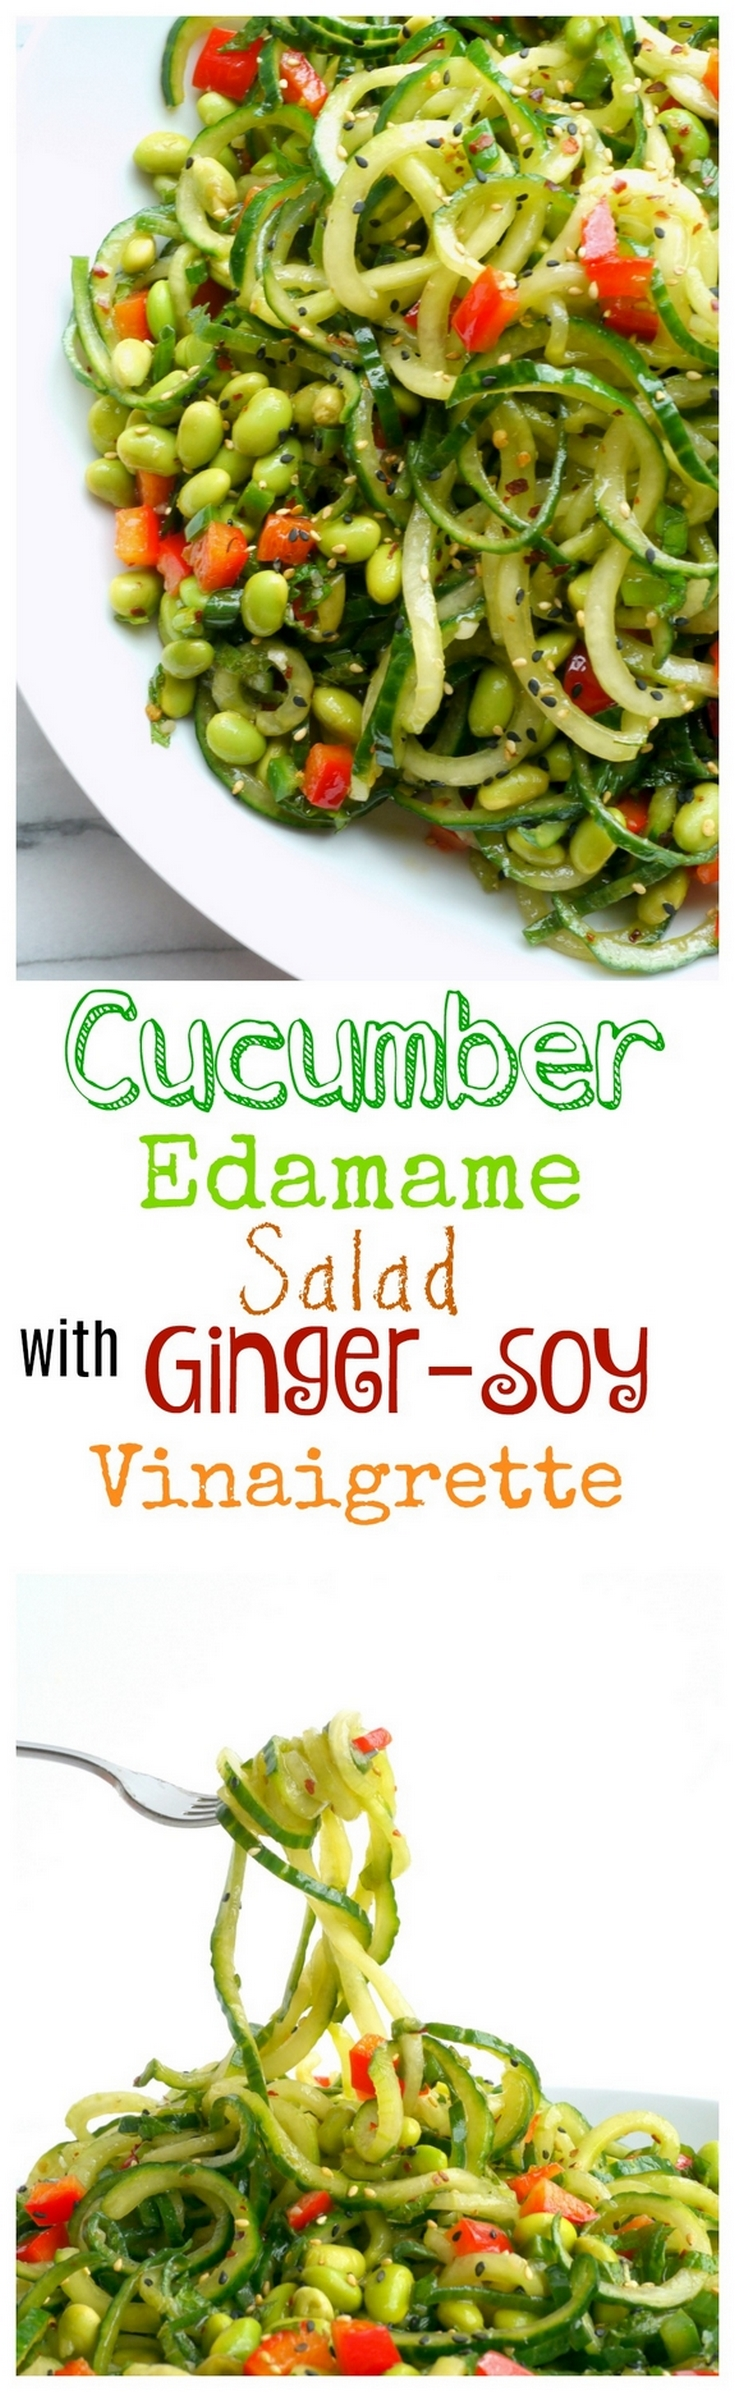 This perfectly delicious Cucumber Edamame Salad with Ginger-Soy Vinaigrette is my latest obsession. The vinaigrette is perfectly balanced over these spiralized cucumber noodles and protein rich edamame. It's the perfect side dish. via @cmpollak1